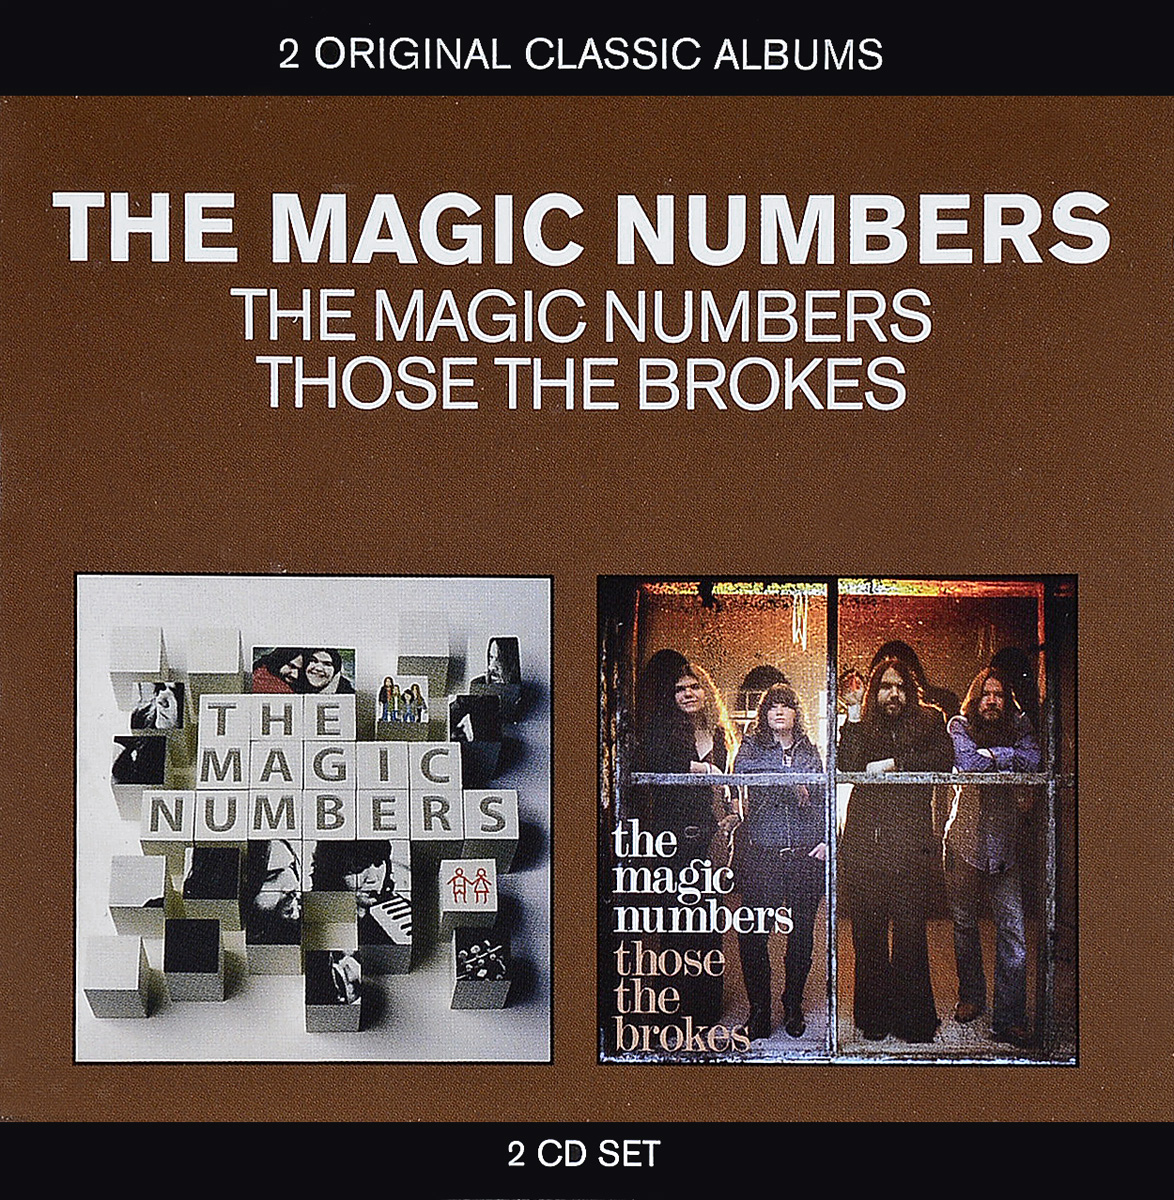 The Magic Numbers The Magic Numbers - 2 Original Classic Albums. The Magic Numbers, Those The Brokes (2CD) гвоздики the xi che magic butterfly whispers